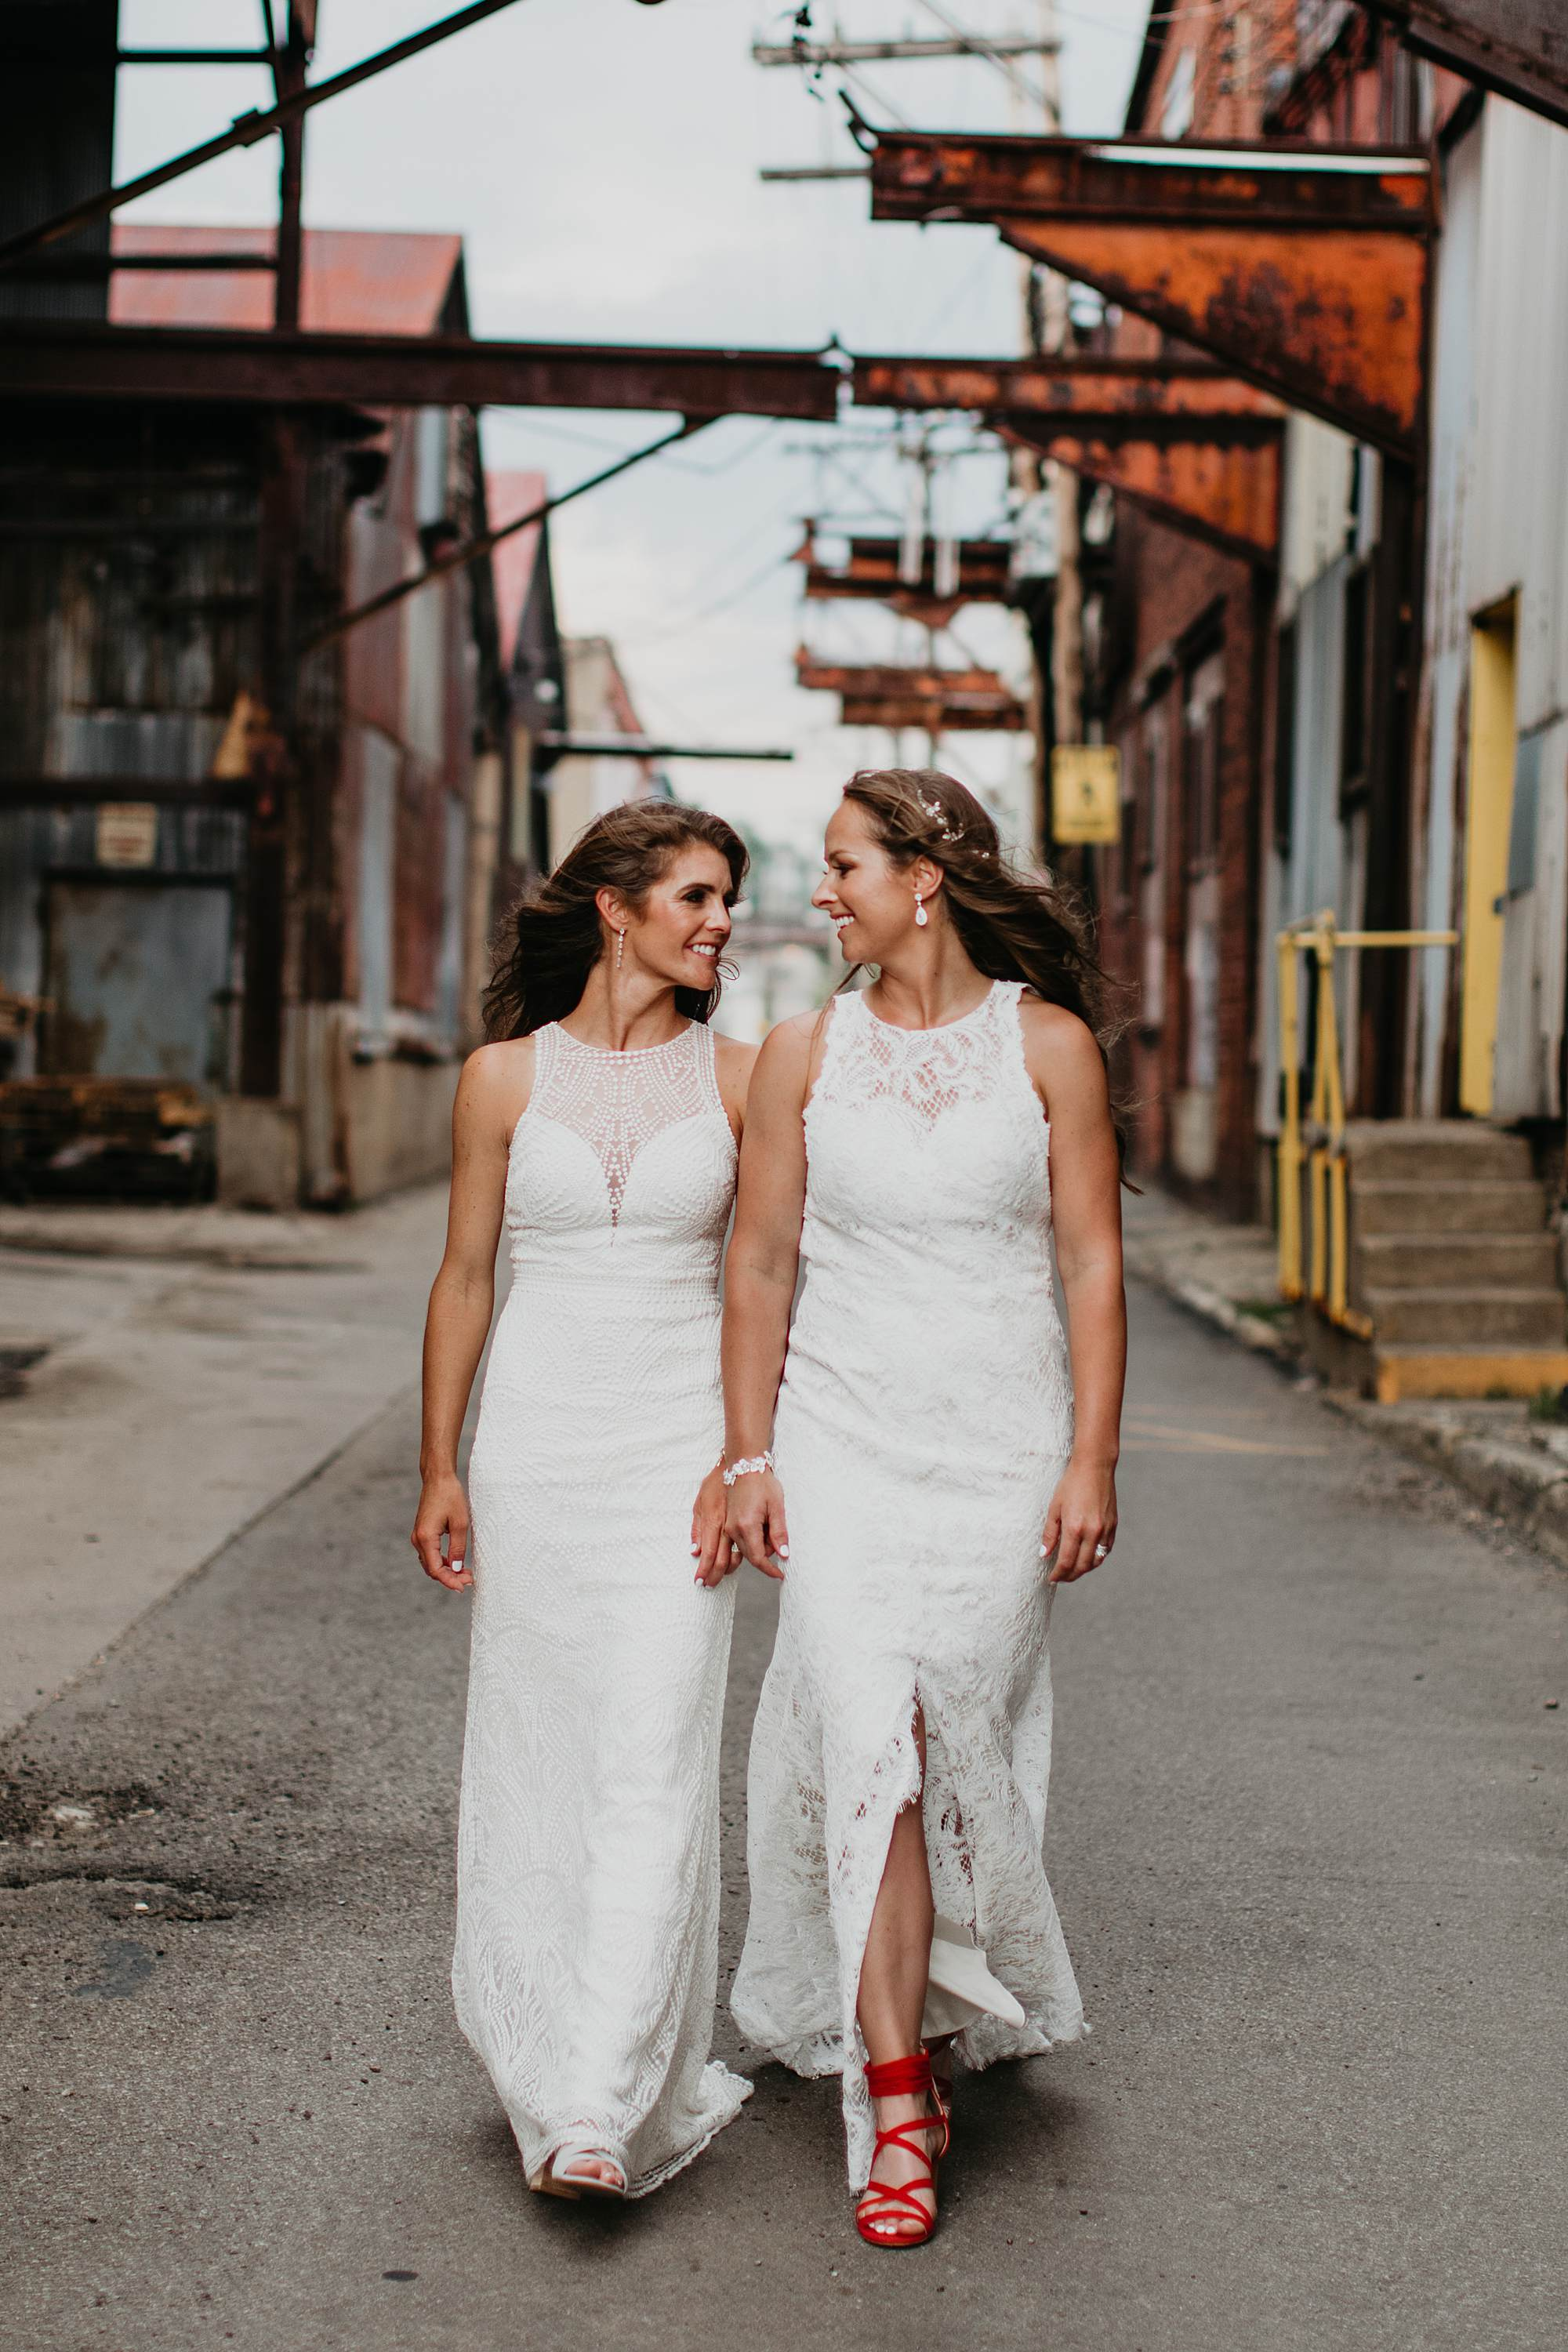 PIttsburgh Wedding Photography, Pittsburgh Gay Wedding